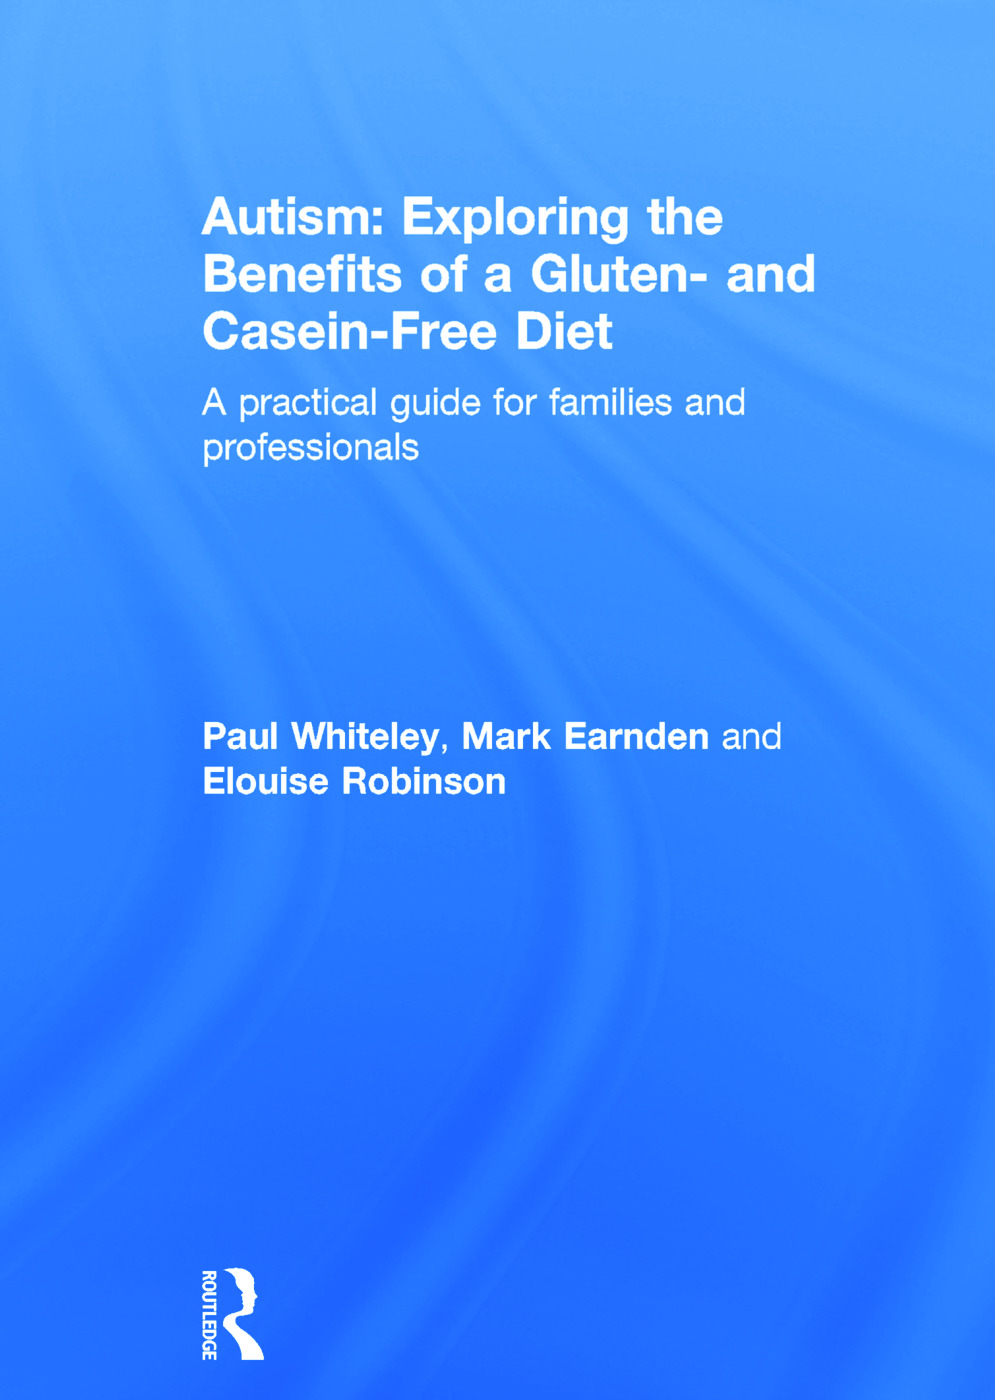 The gluten- and casein-free (GFCF) diet and autism: episode 2